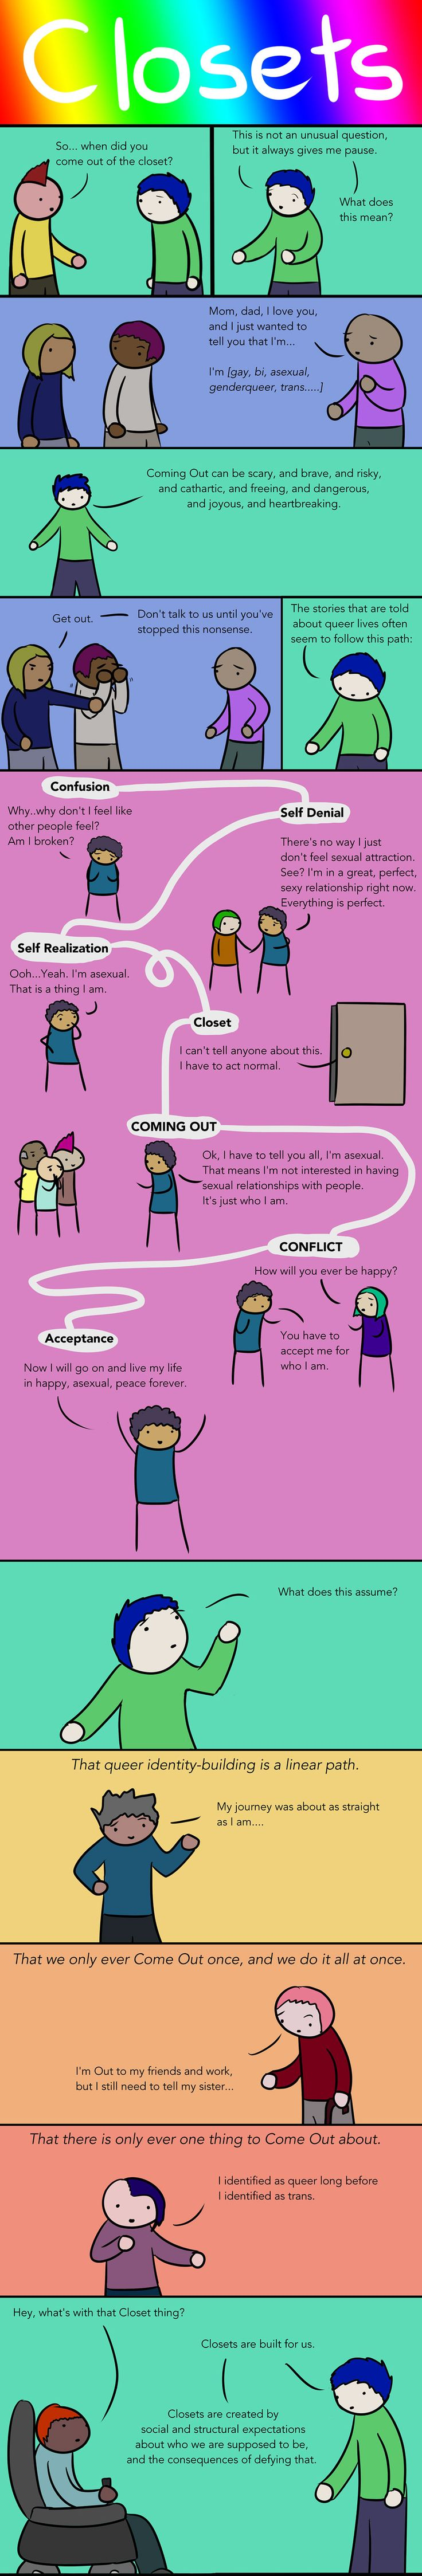 """Coming out of the closet"" is big part of our lingo and understanding of the LGBTQIA+ experience. But do you know about the many different meanings of being ""out"" for different people?  This comic breaks down what the concept of the closet really means, and shows how cis and straight people can help dismantle the forces building closets around our identities."